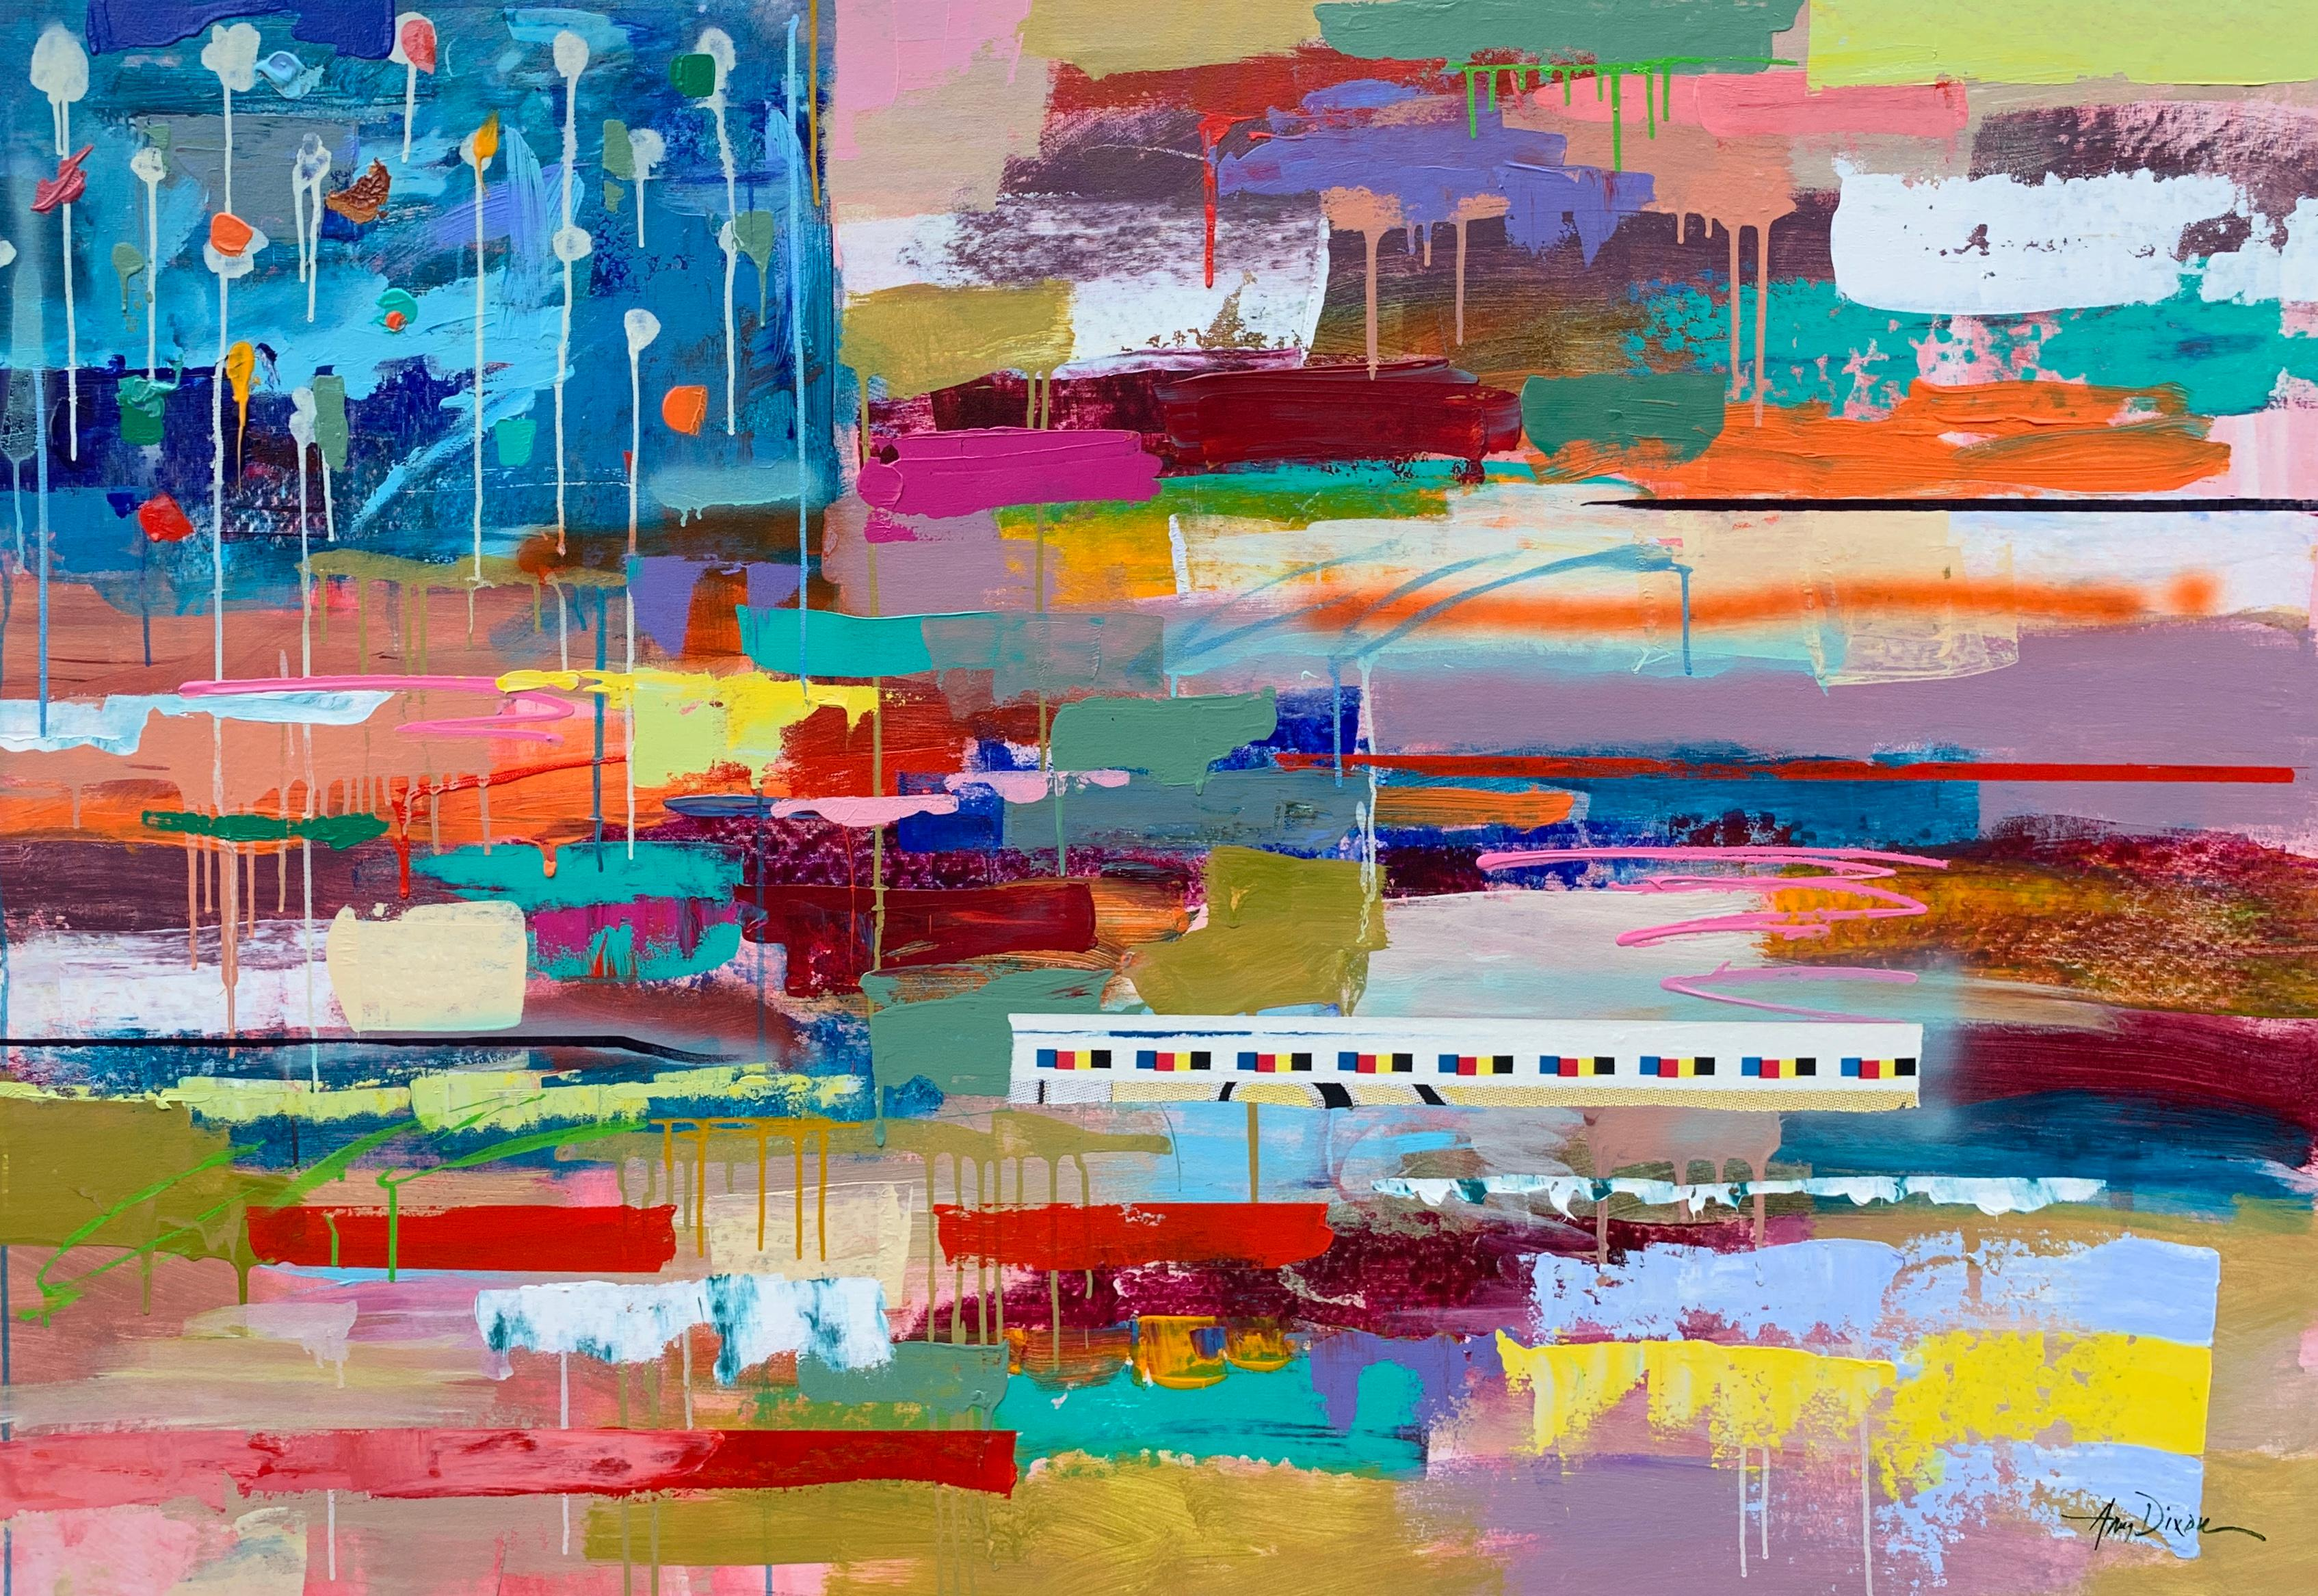 Flag of Many Colors by Amy Dixon, Acrylic on Canvas Abstract Painting